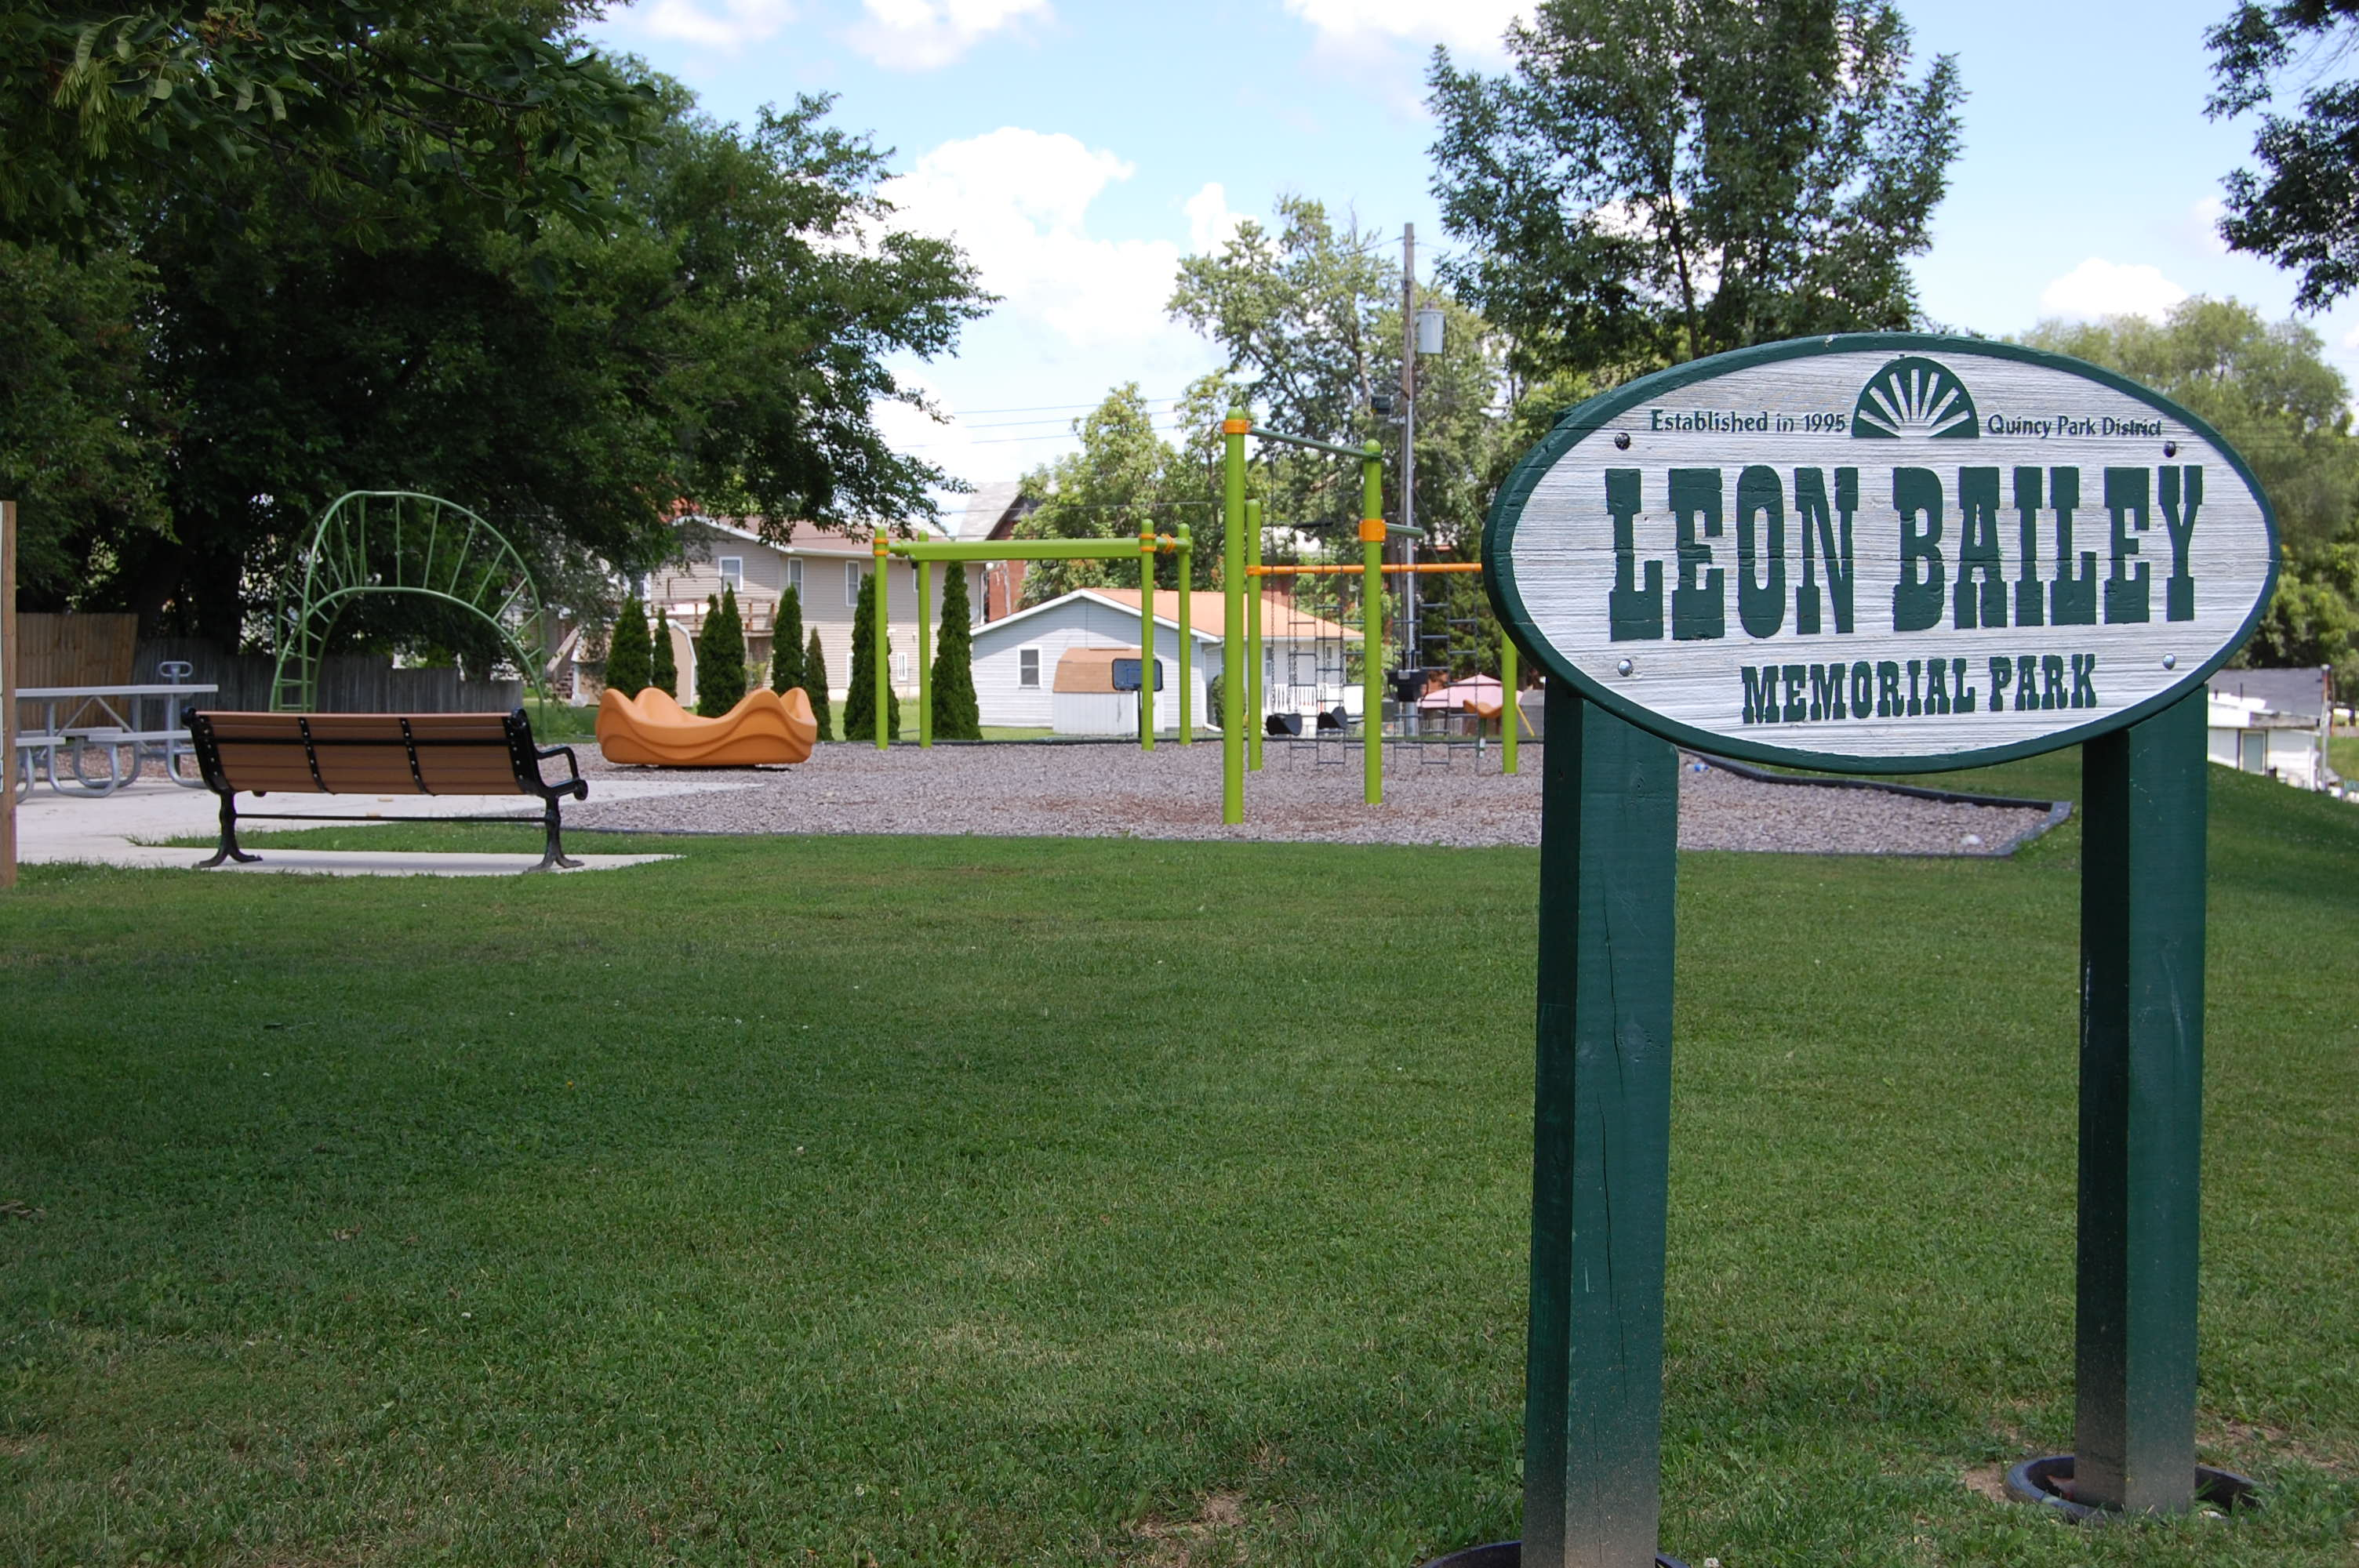 Leon Bailey Playground - Quincy Park District